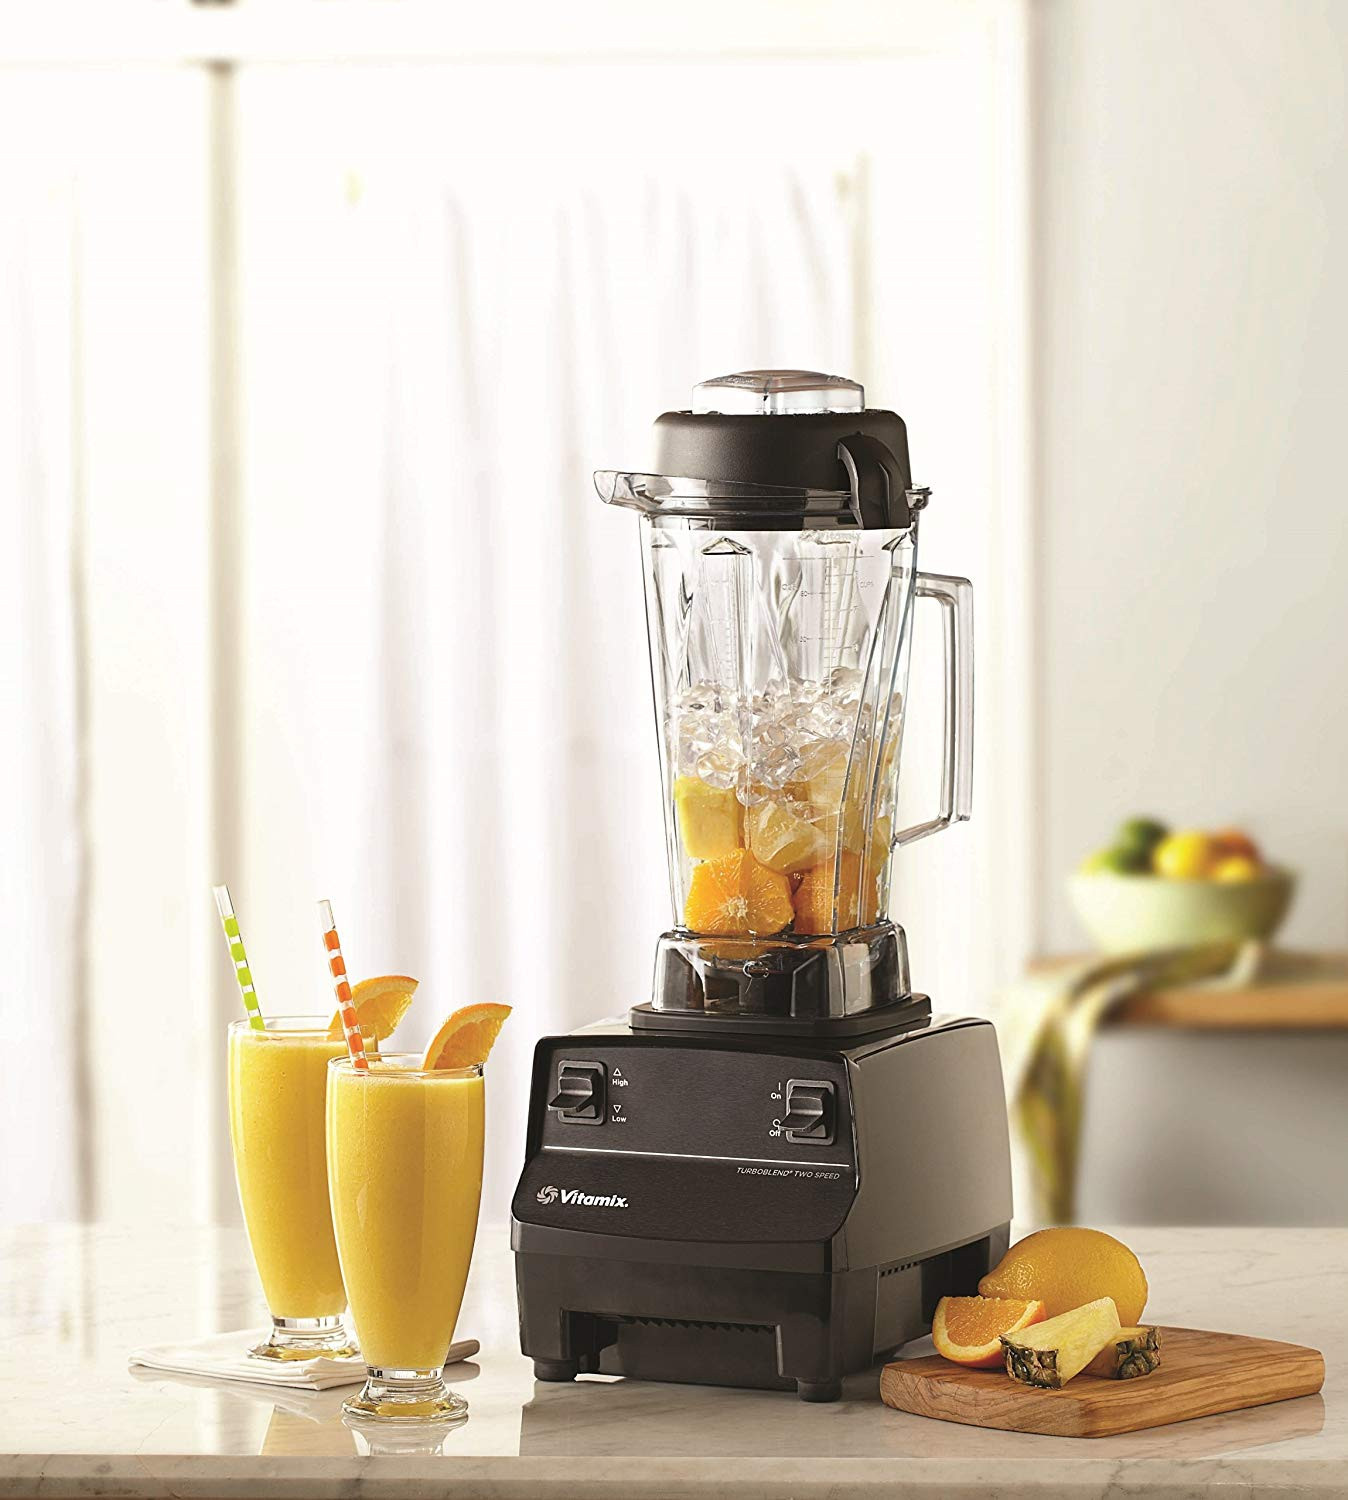 Blender For Smoothies  Blender for Making Smoothies